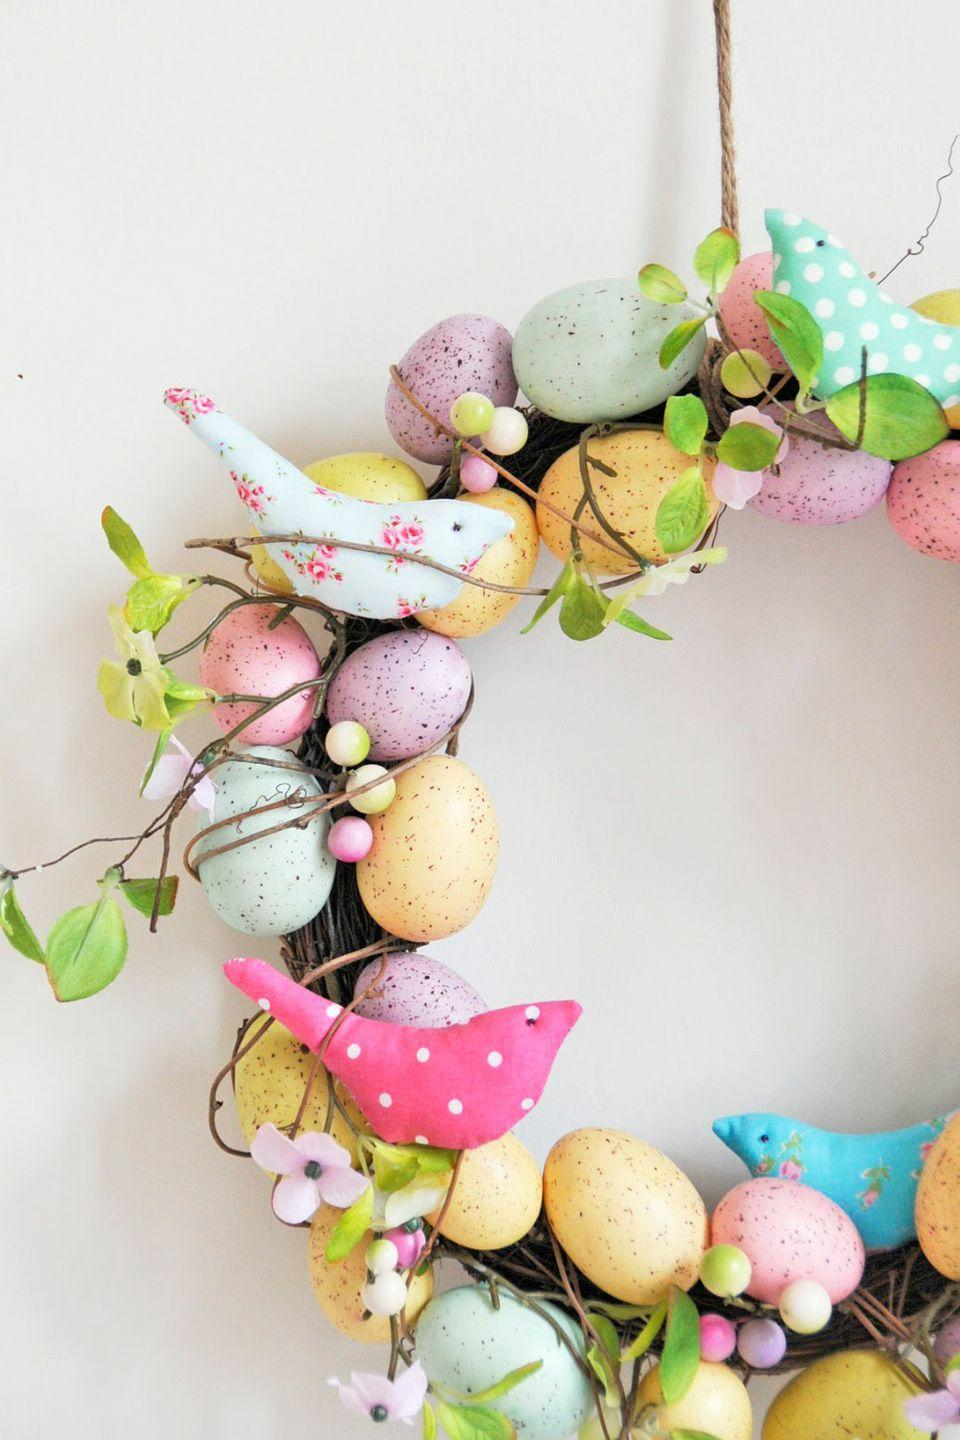 """<p>Colorful fabric birds and speckled eggs adorn this whimsical wreath for Easter.</p><p><strong>Get the tutorial at <a href=""""http://helenphilipps.blogspot.com/2013/03/easter-decorating.html"""" rel=""""nofollow noopener"""" target=""""_blank"""" data-ylk=""""slk:Helen Philipps"""" class=""""link rapid-noclick-resp"""">Helen Philipps</a>.</strong></p><p><strong><a class=""""link rapid-noclick-resp"""" href=""""https://www.amazon.com/Misscrafts-Squares-Patchwork-Scrapbooking-Quilting/dp/B01MS22AJV?tag=syn-yahoo-20&ascsubtag=%5Bartid%7C10050.g.4088%5Bsrc%7Cyahoo-us"""" rel=""""nofollow noopener"""" target=""""_blank"""" data-ylk=""""slk:SHOP SPRING FABRIC"""">SHOP SPRING FABRIC</a></strong></p>"""